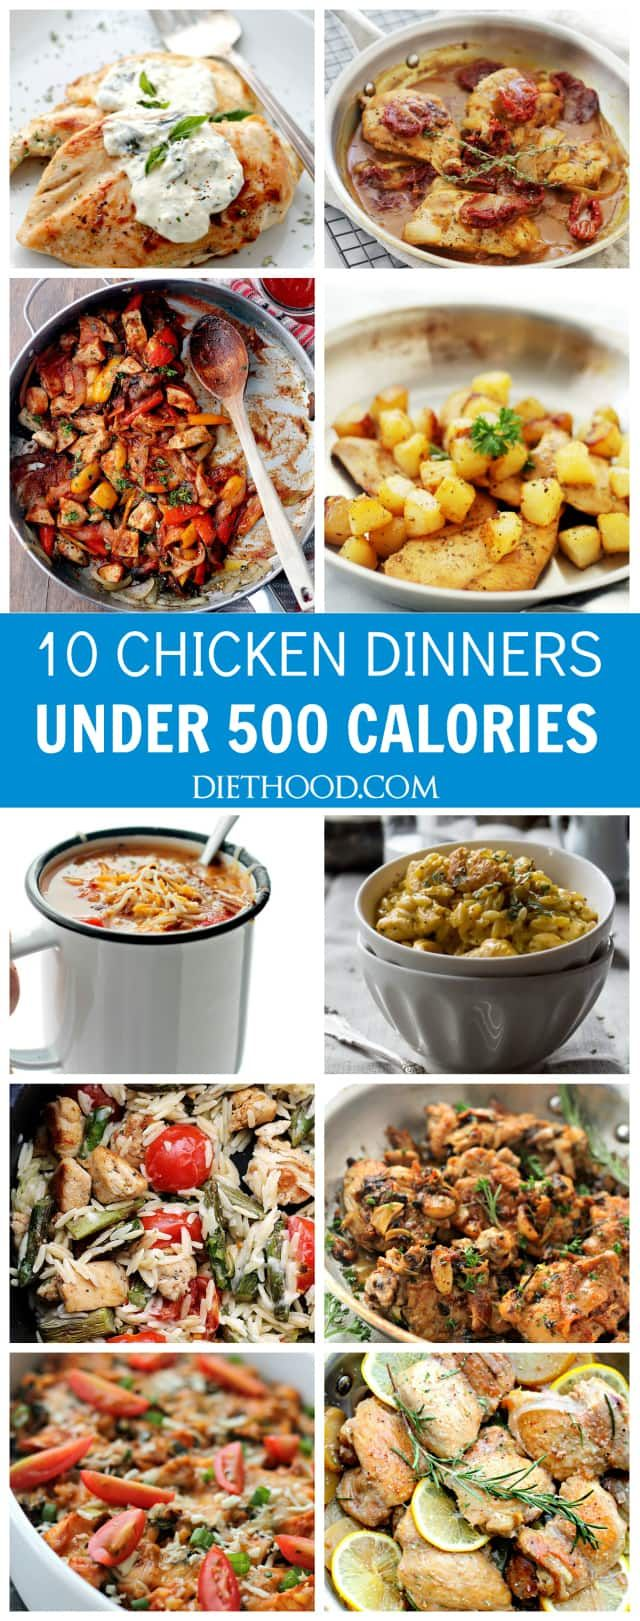 Ten Chicken Dinners Under 500 Calories | www.diethood.com | These delicious and satisfying Chicken Dinners are all under 500 calories! You don't have to give up on taste to stay on track with your healthy eating goals.